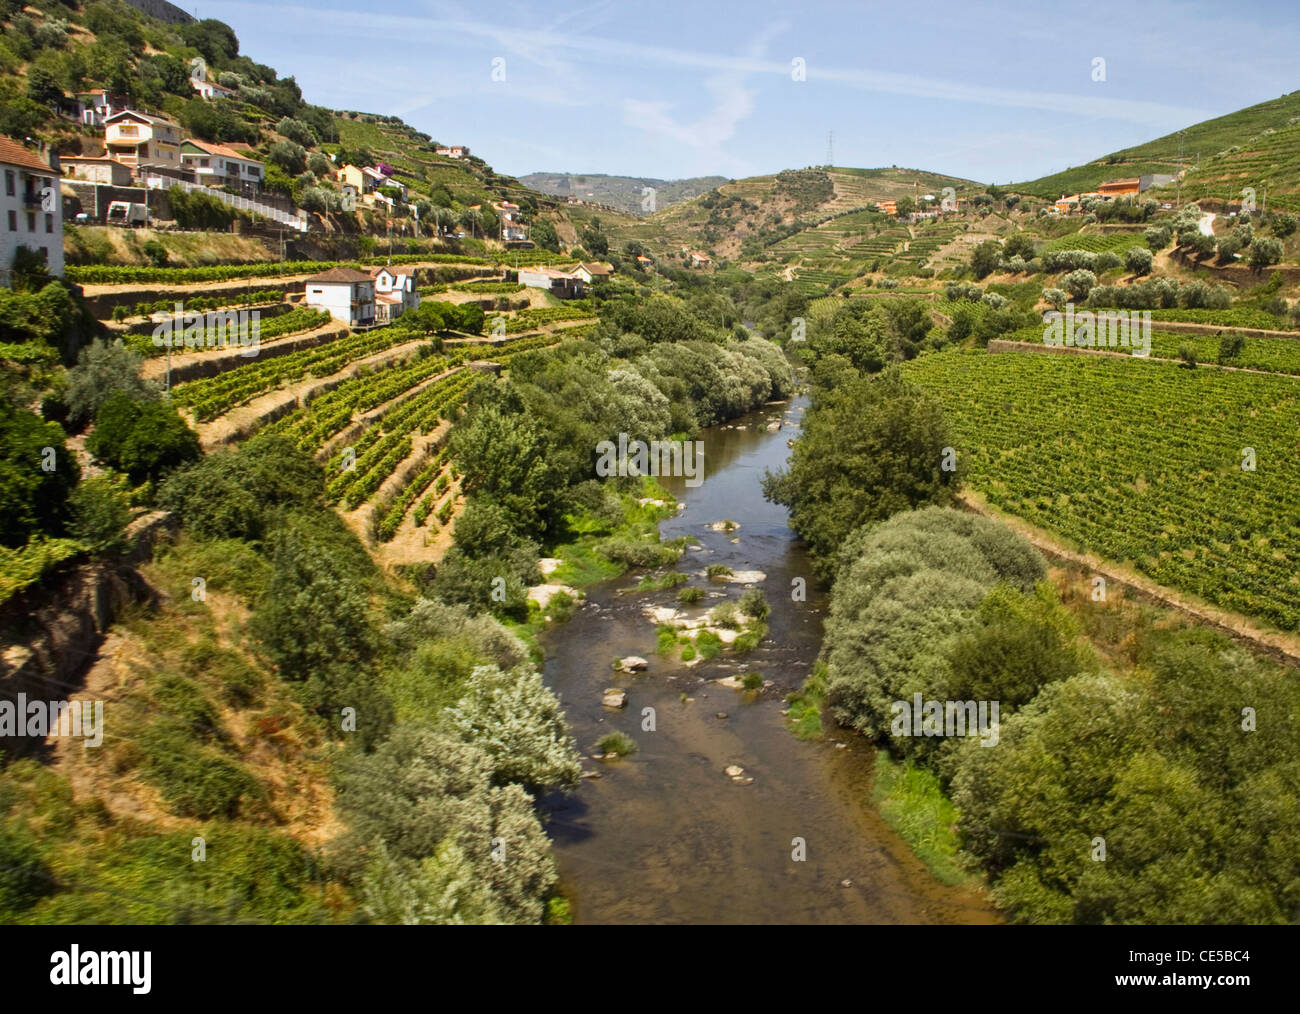 Portugal, Porto.  Vineyards along the Douro River in Northern Portugal near Regua. Seen from the Linha do Douro - Stock Image